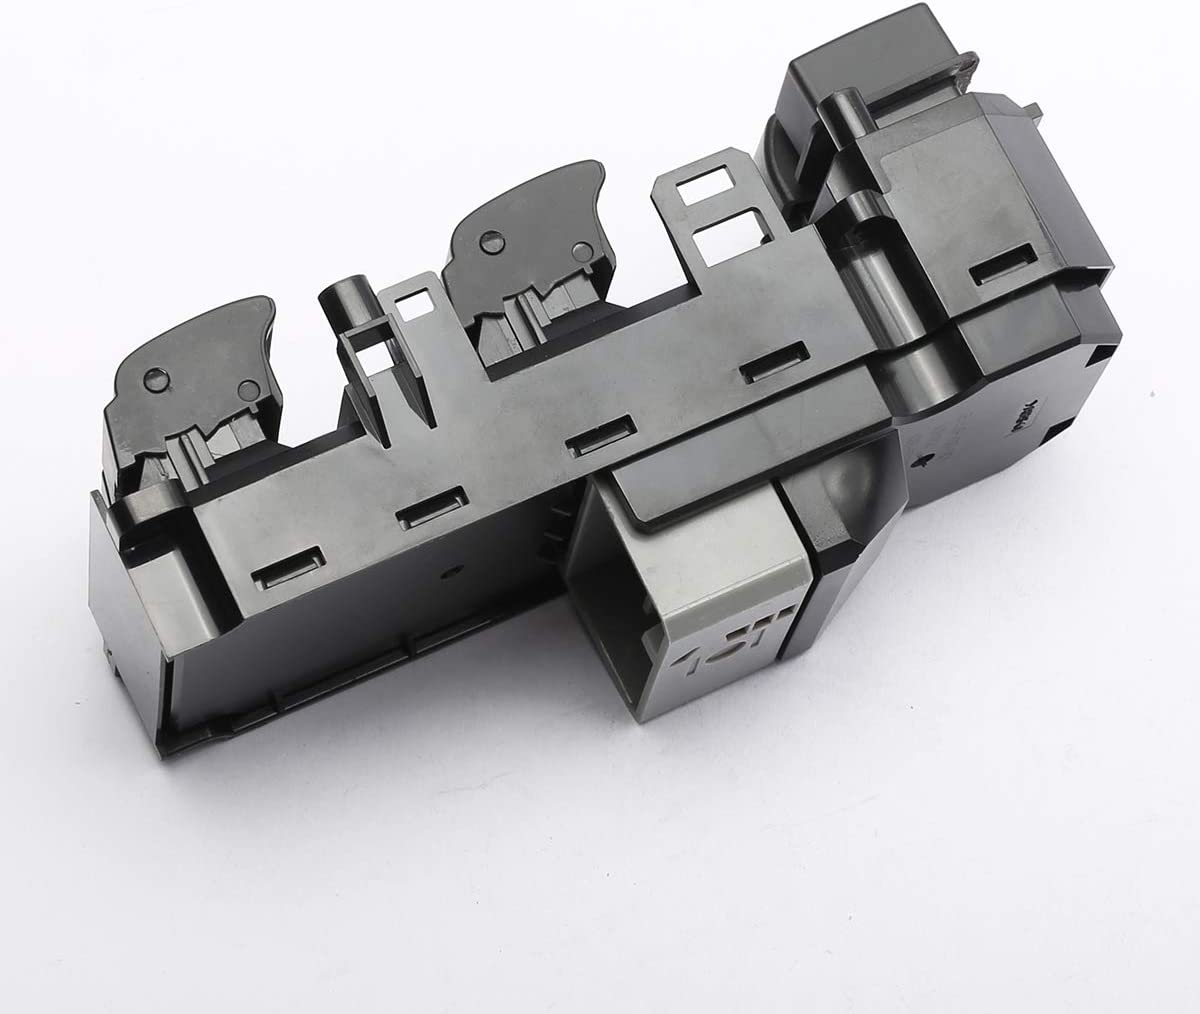 CENTAURUS 35750-TB0-H01 35750-TBD-H13 35750-TA0-A02 Driver Side Master Power Window Switch Replacement for Honda Accord 2008 2009 2010 2011 2012